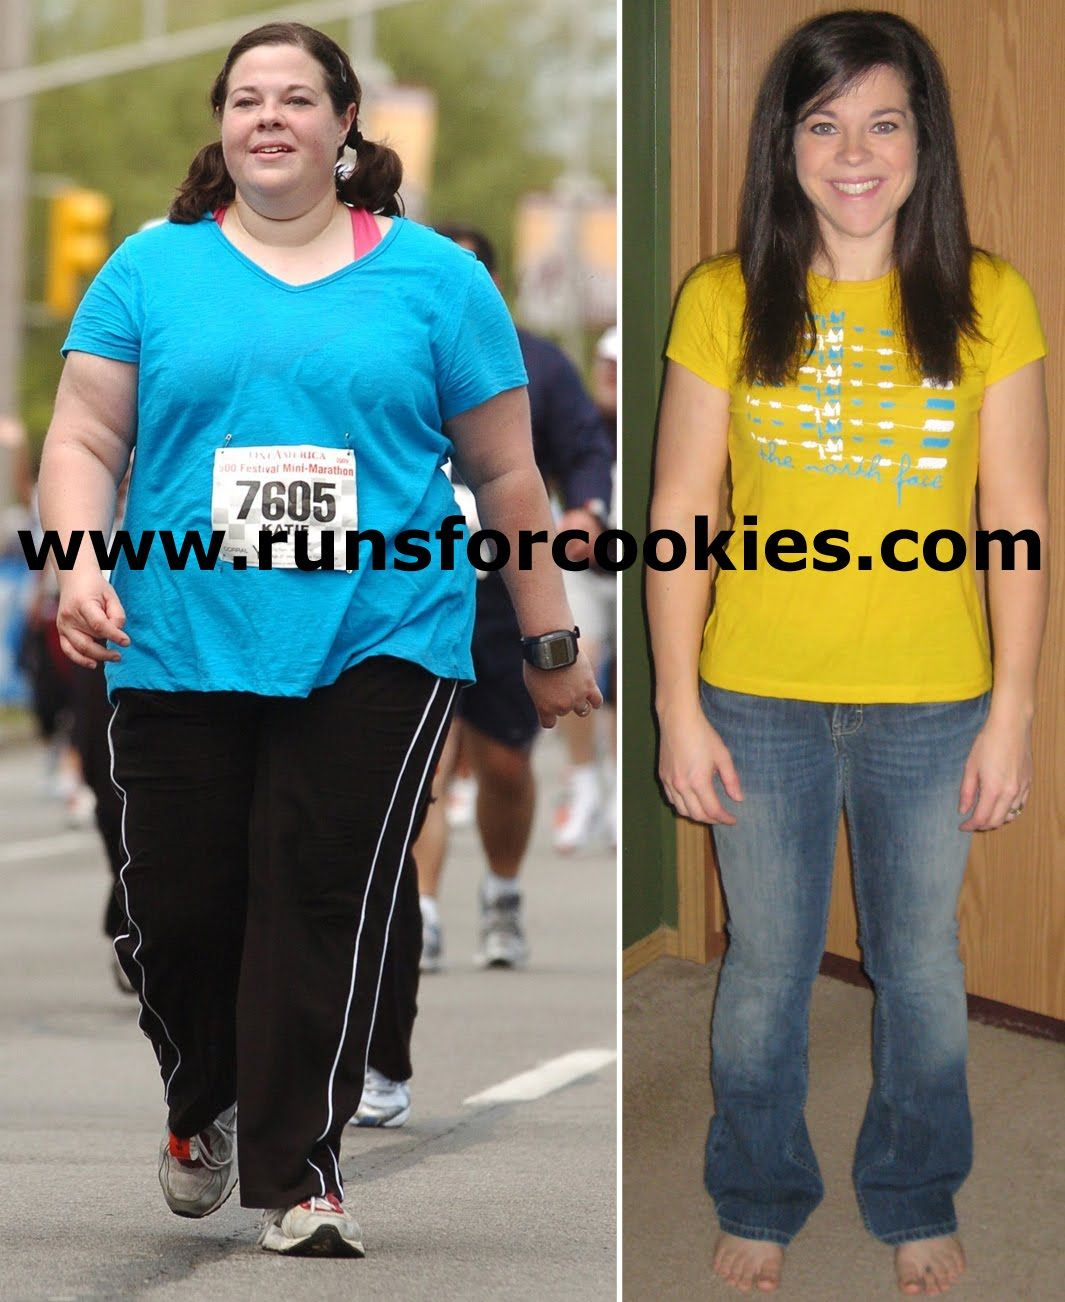 How often should i workout to lose weight fast